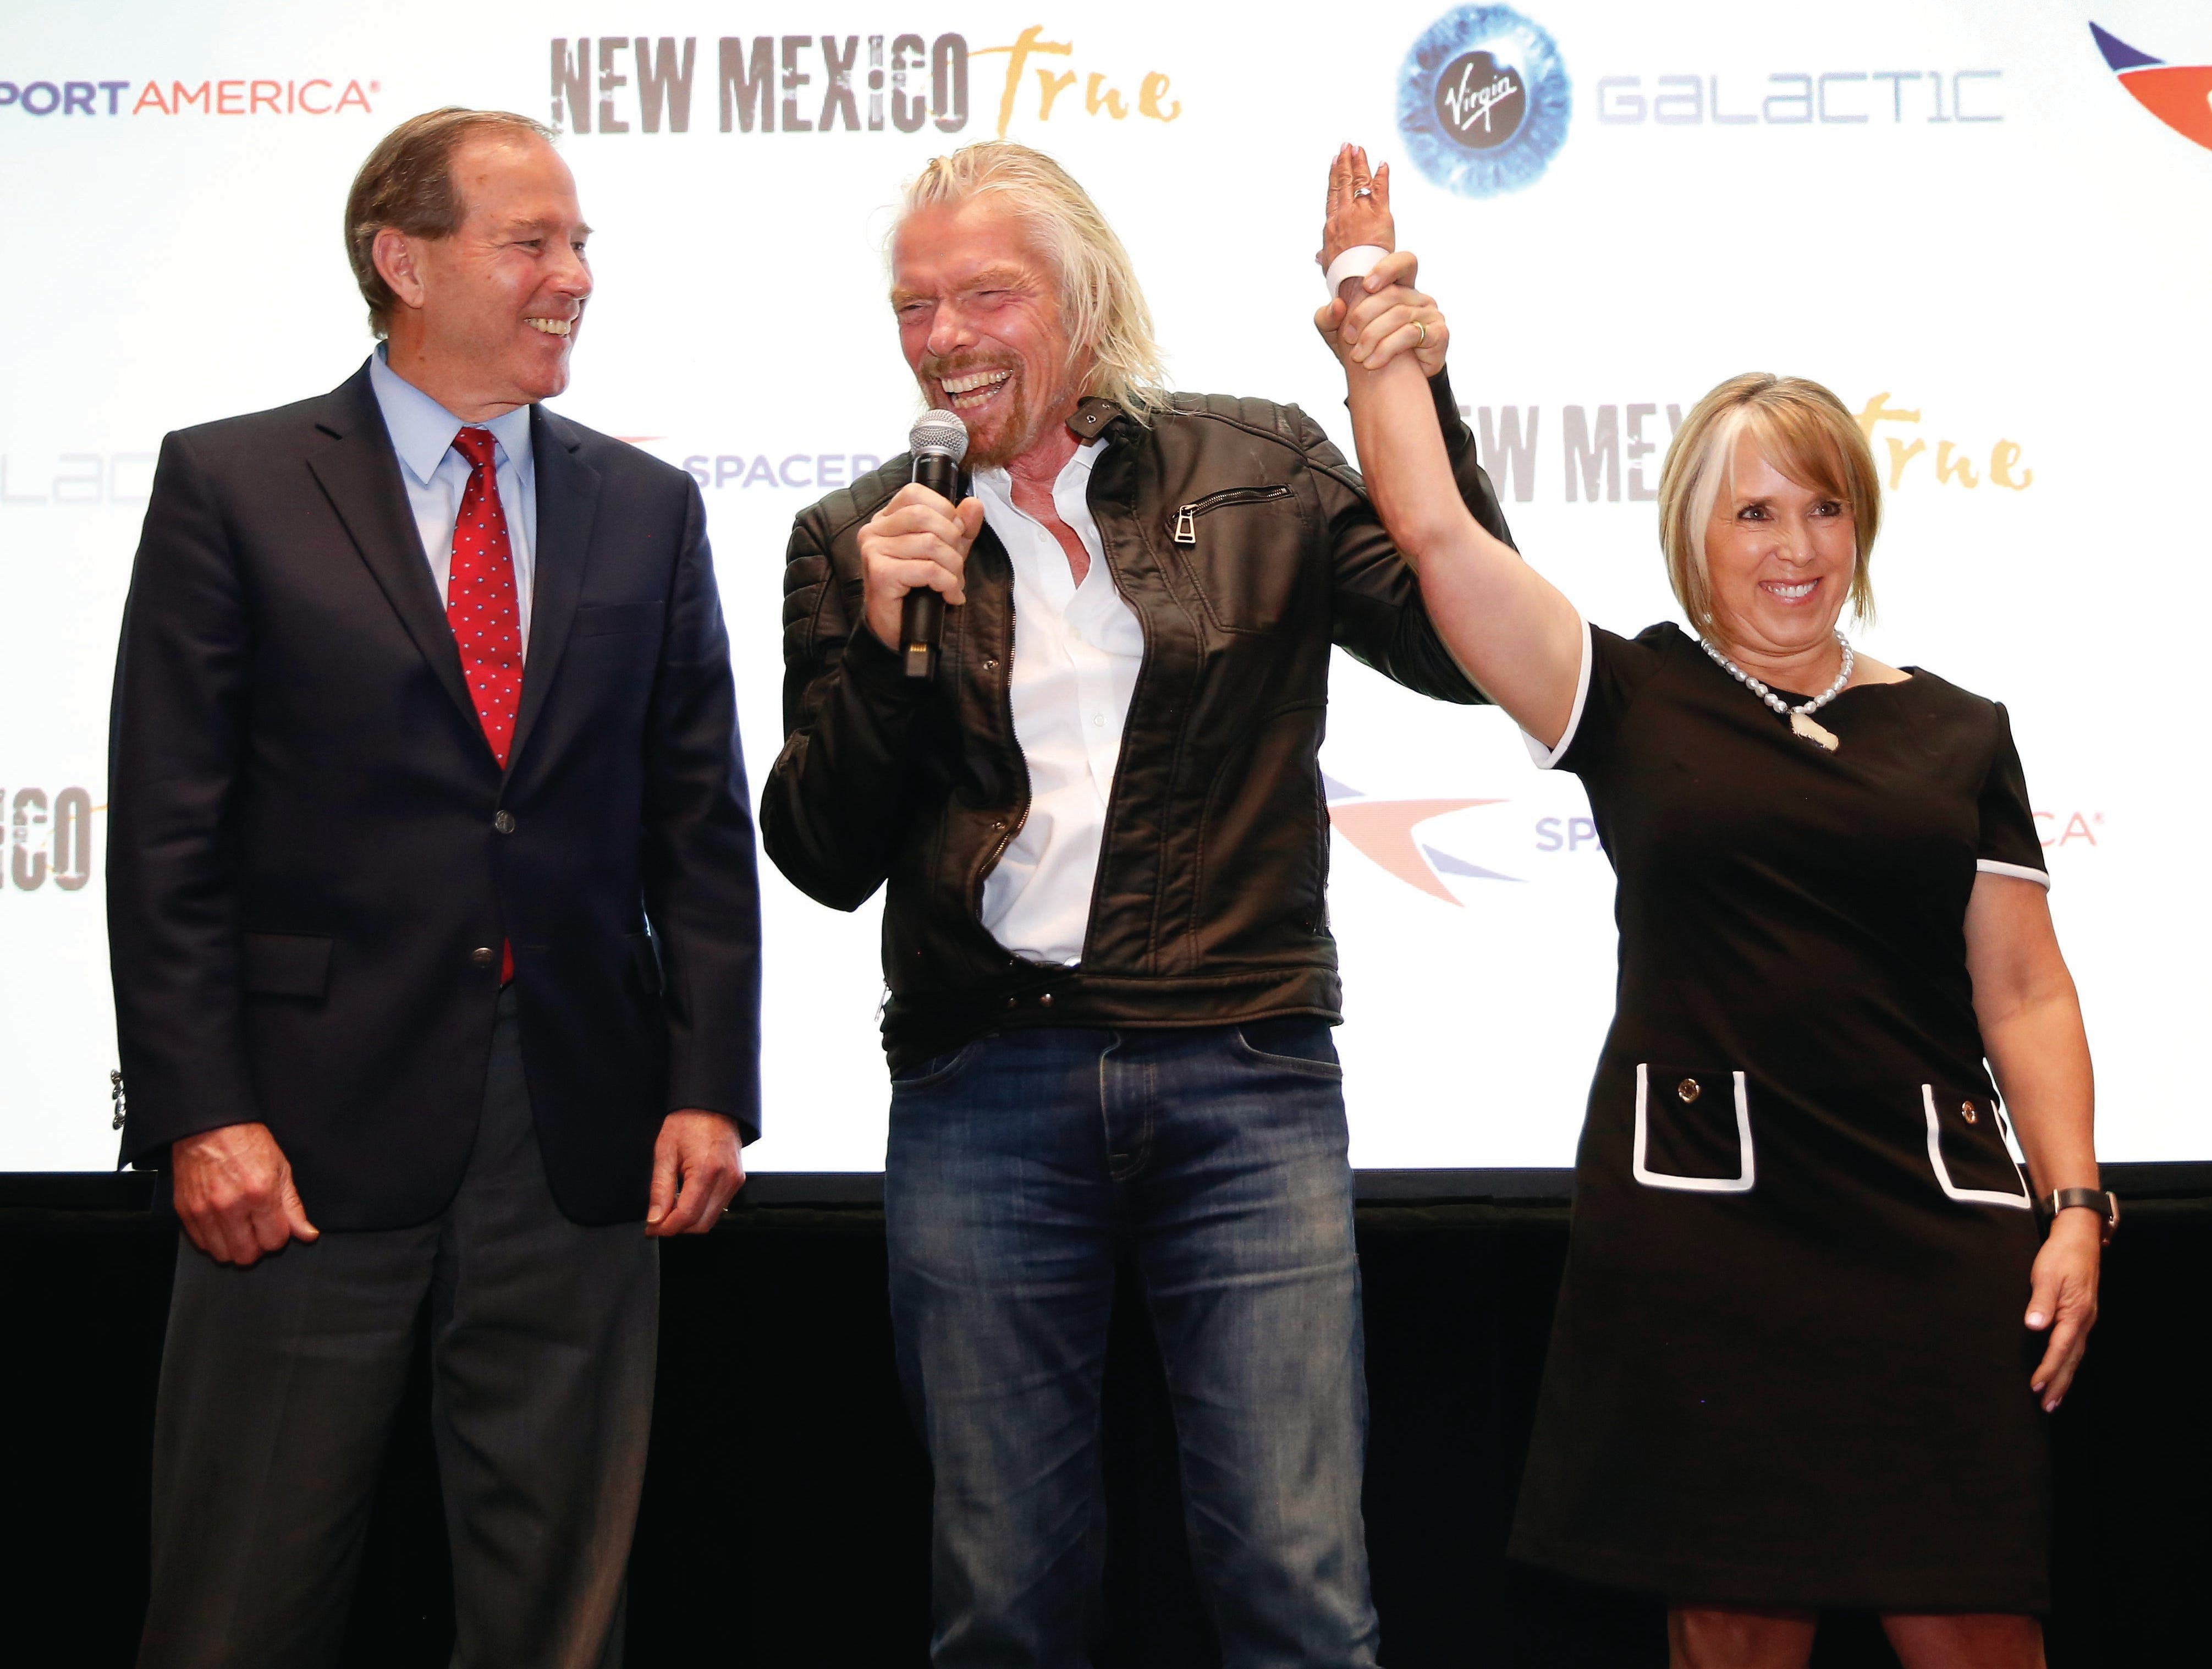 Virgin Galactic's Richard Branson, center, celebrates the space company's announcement with New Mexico Gov. Michelle Lujan Grisham and U.S. Sen. Tom Udall, D-N.M., on Friday, May 10, 2019.